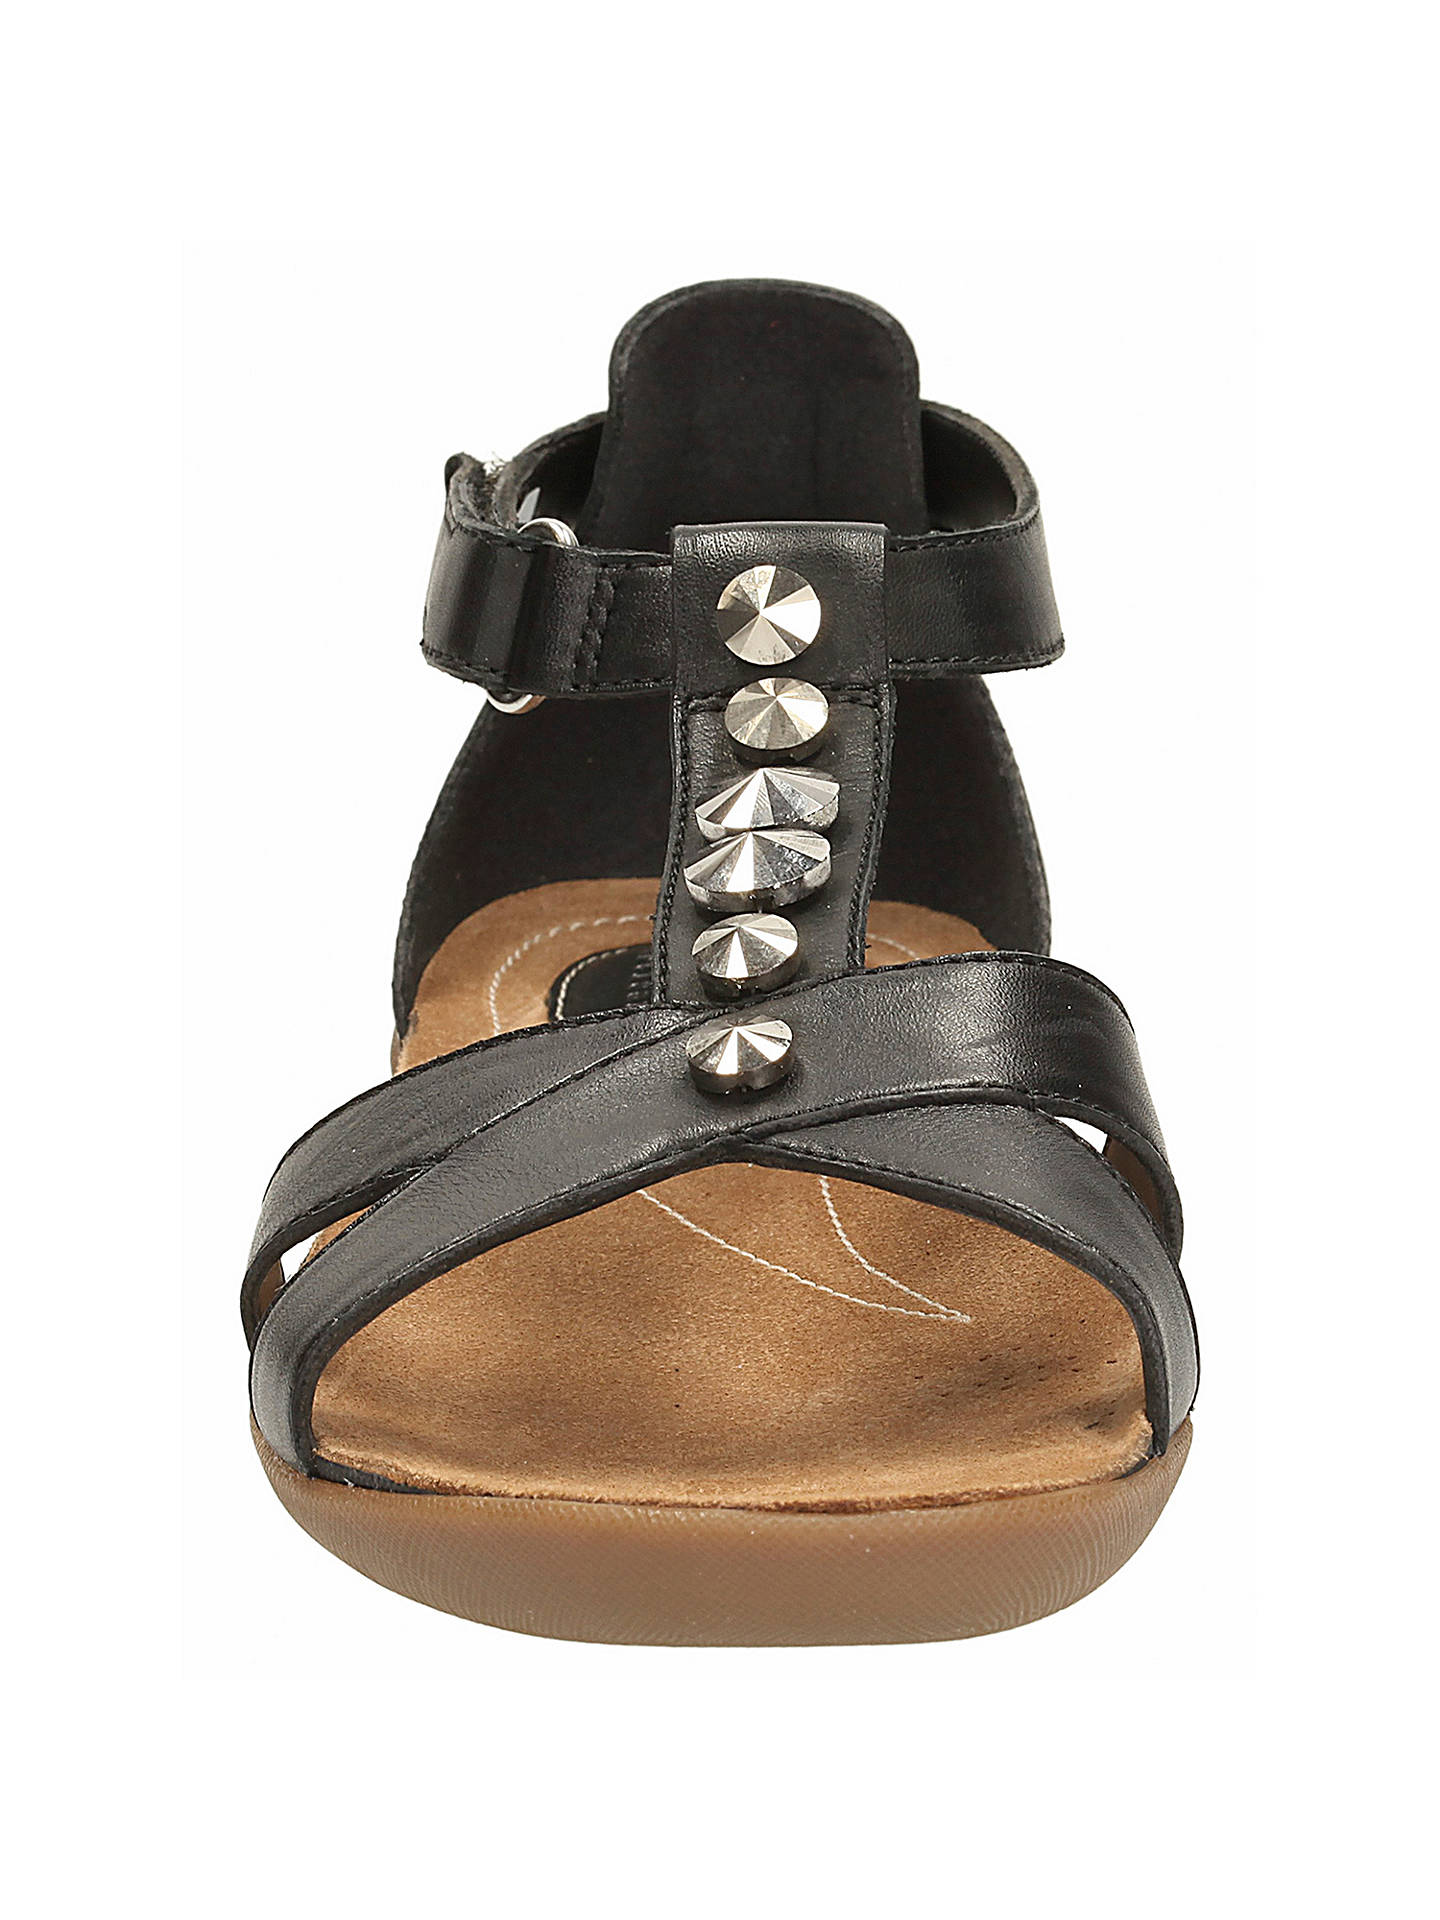 6889a8241 Clarks Raffi Scent Leather Sandals at John Lewis   Partners